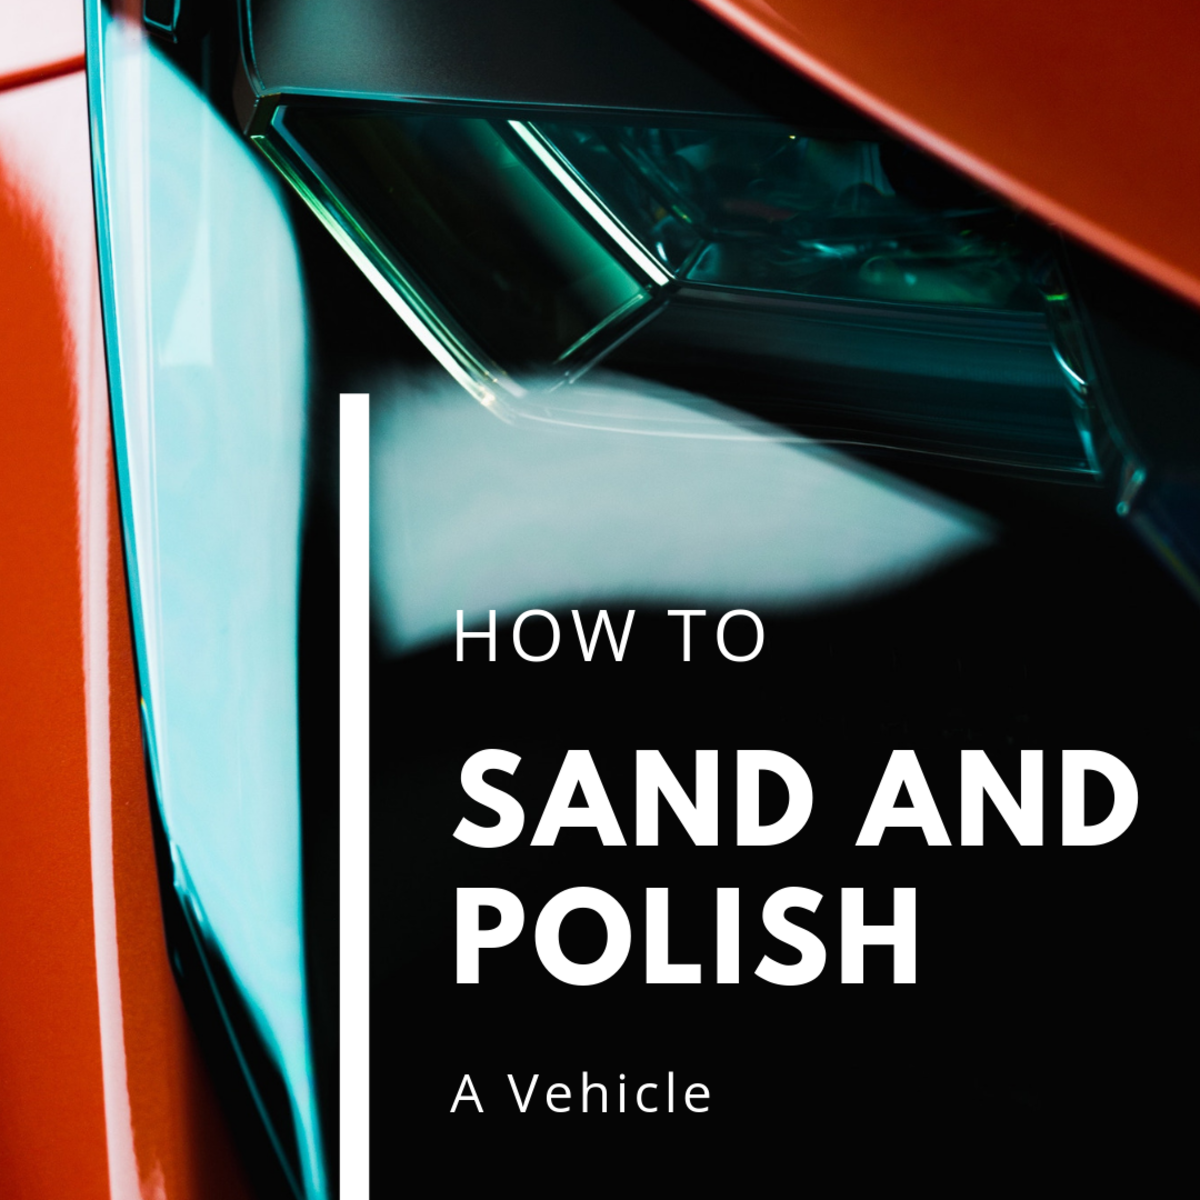 How to sand and polish a vehicle.